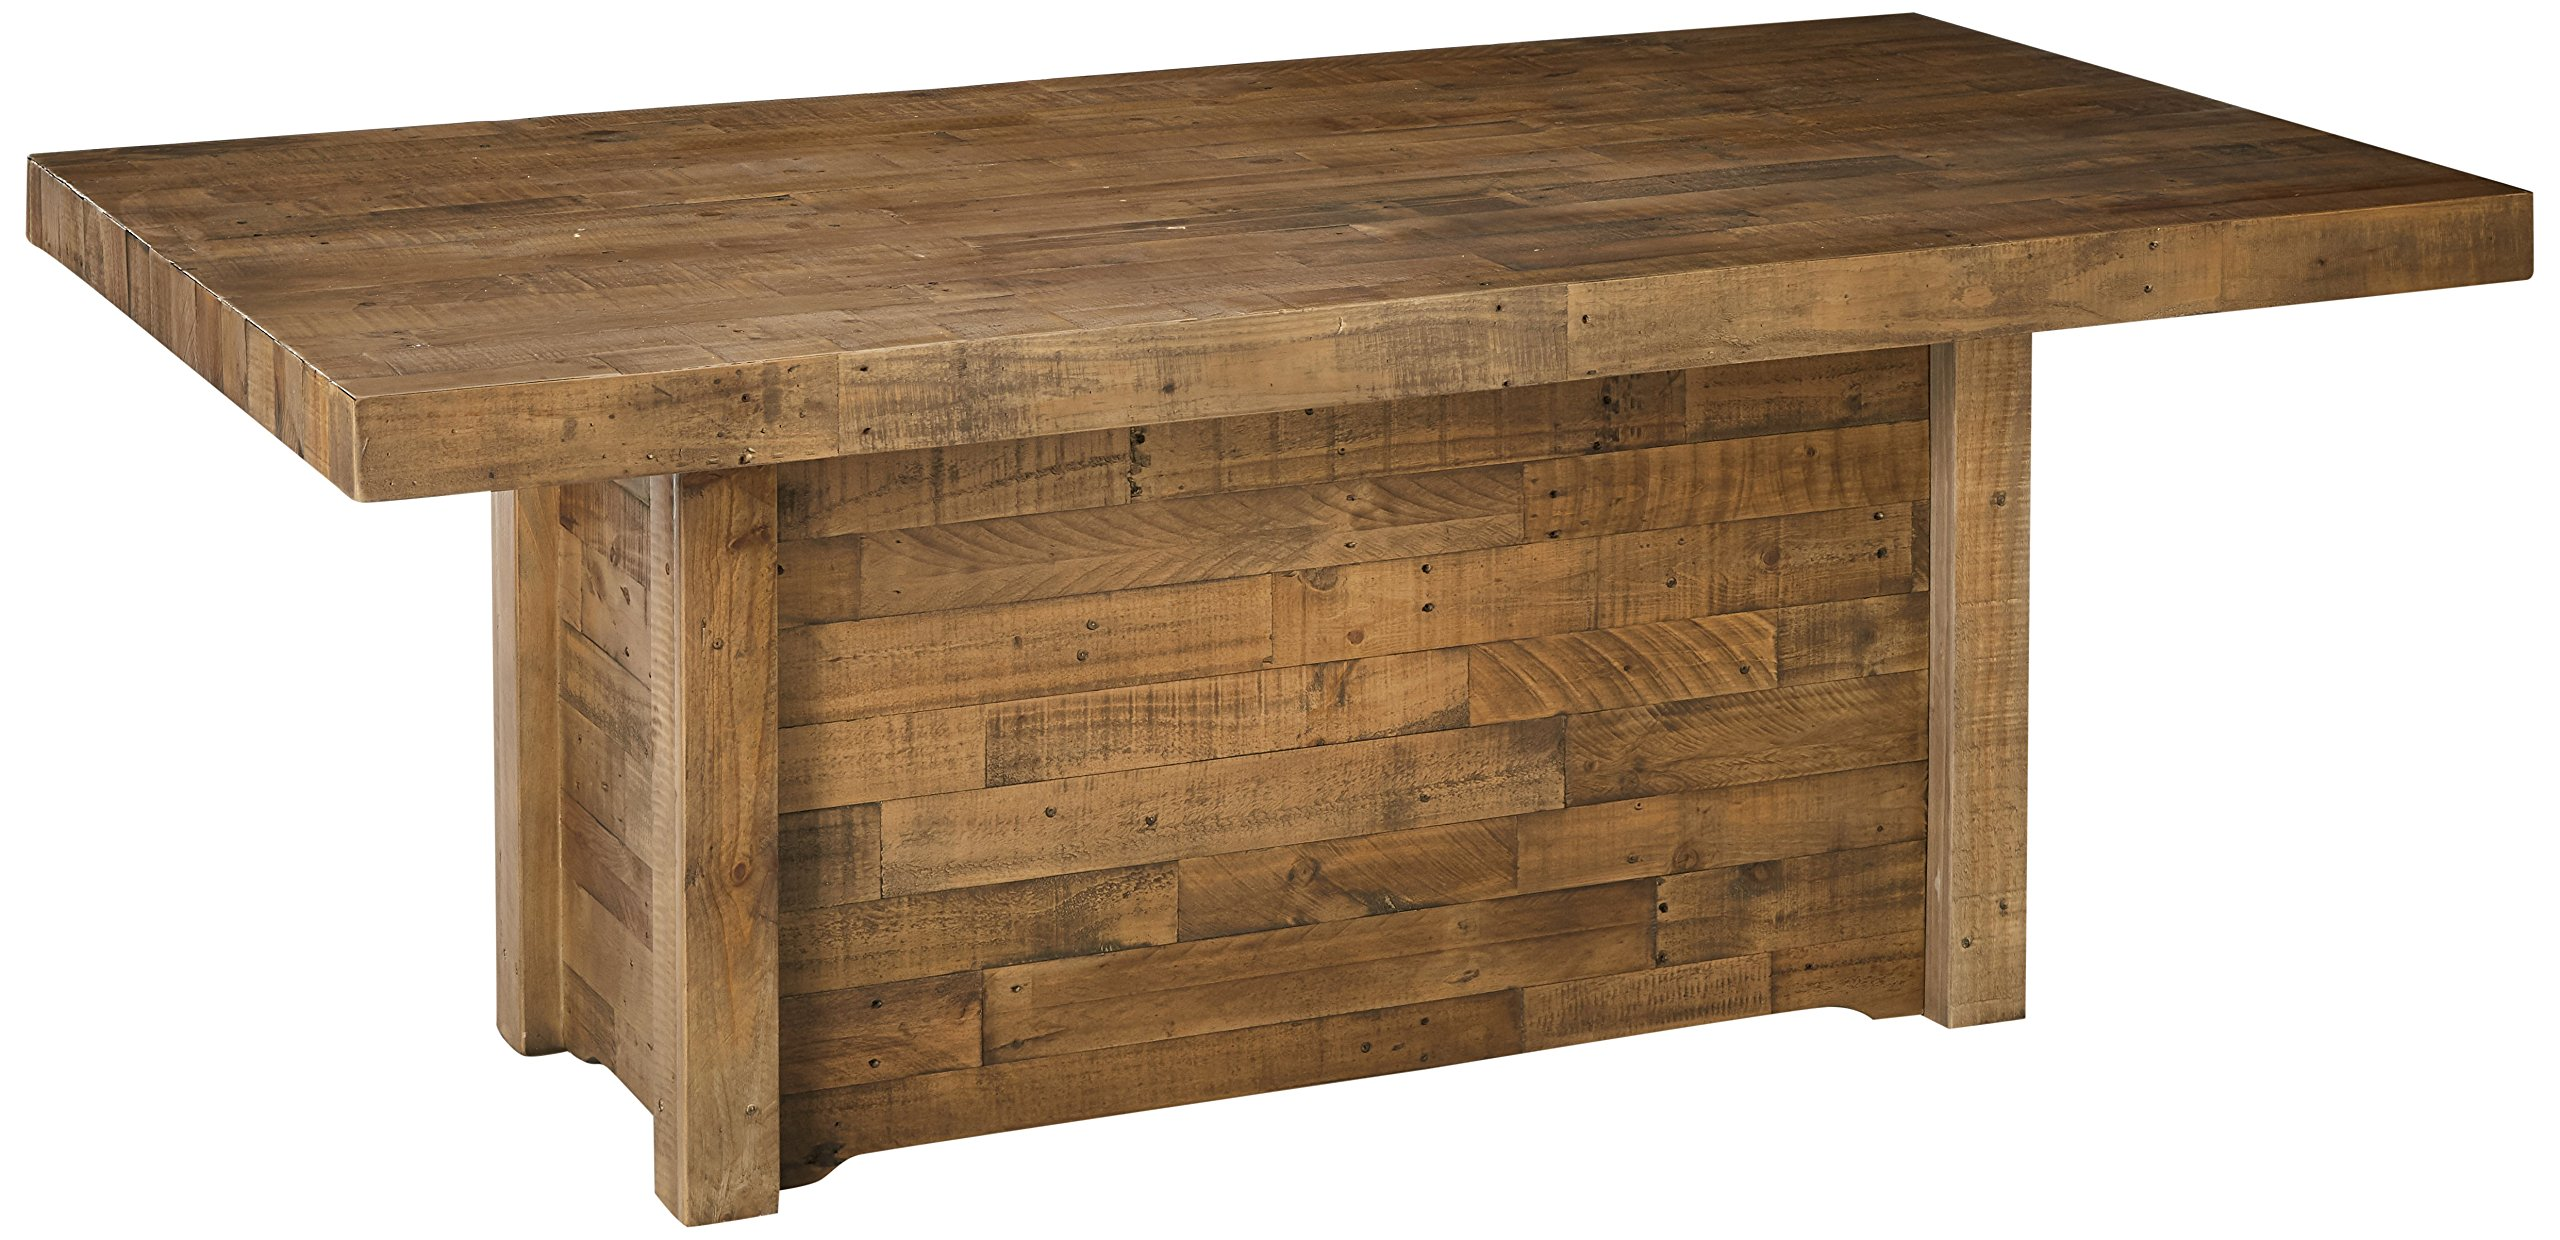 Signature Design by Ashley D775-25 Sommerford Dining Table, Summerford